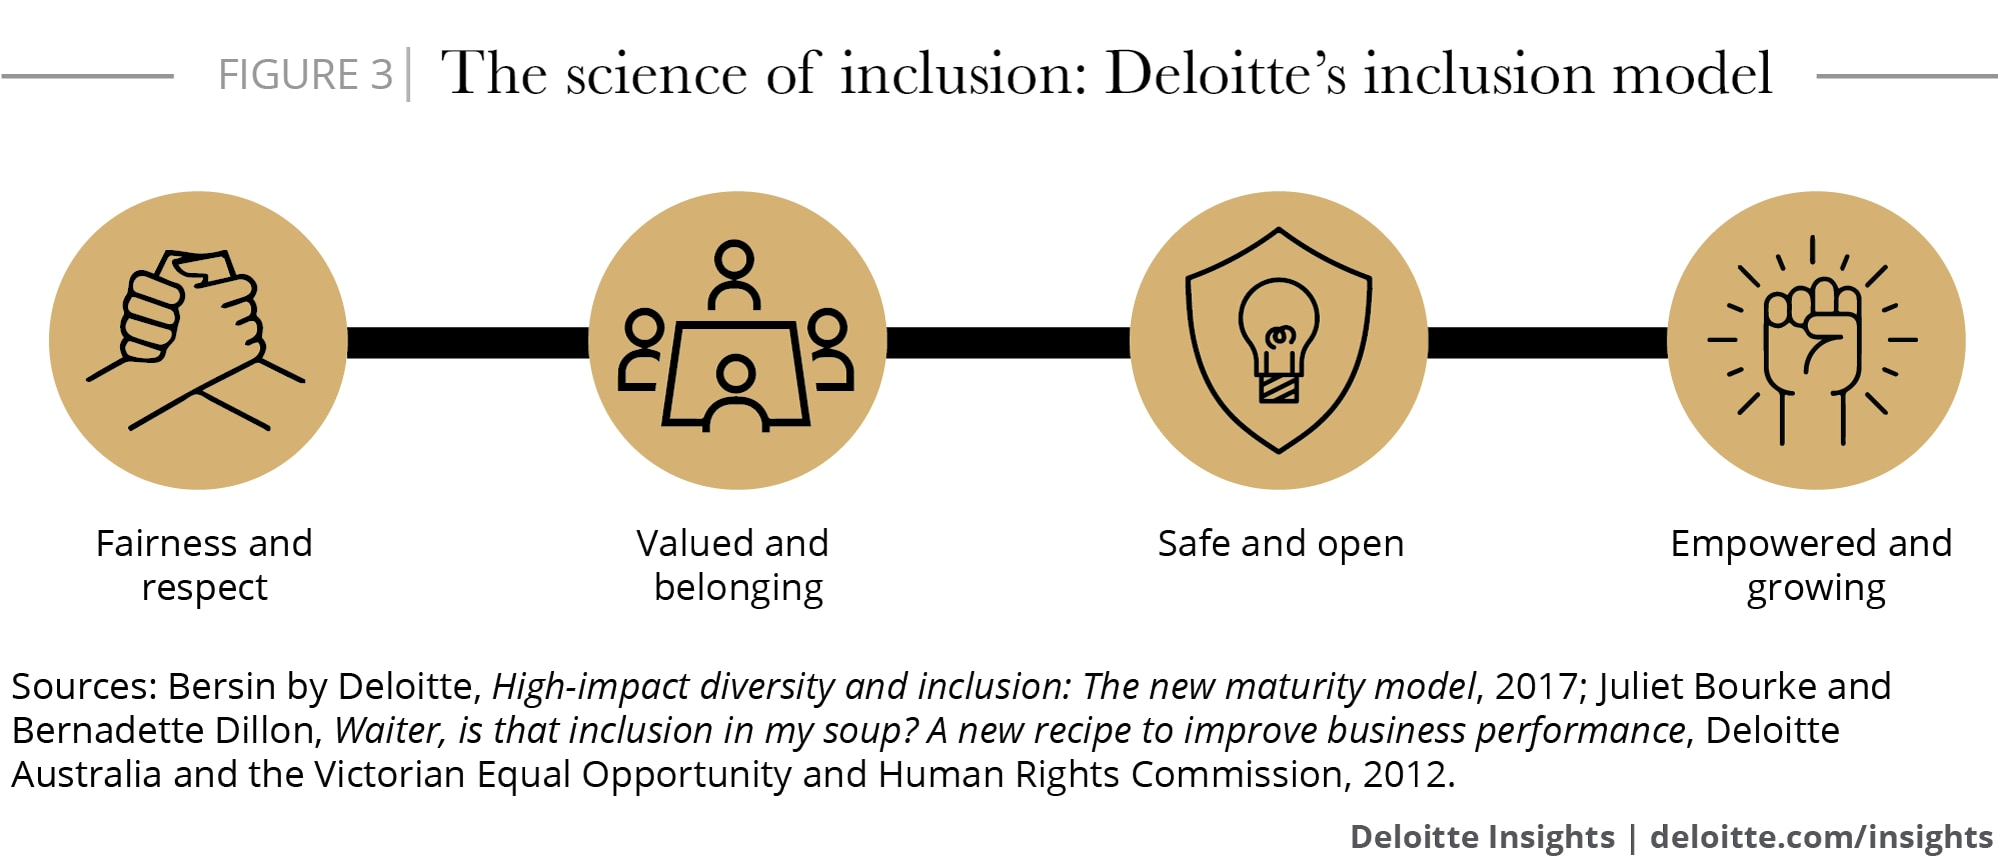 The science of inclusion: Deloitte's inclusion model